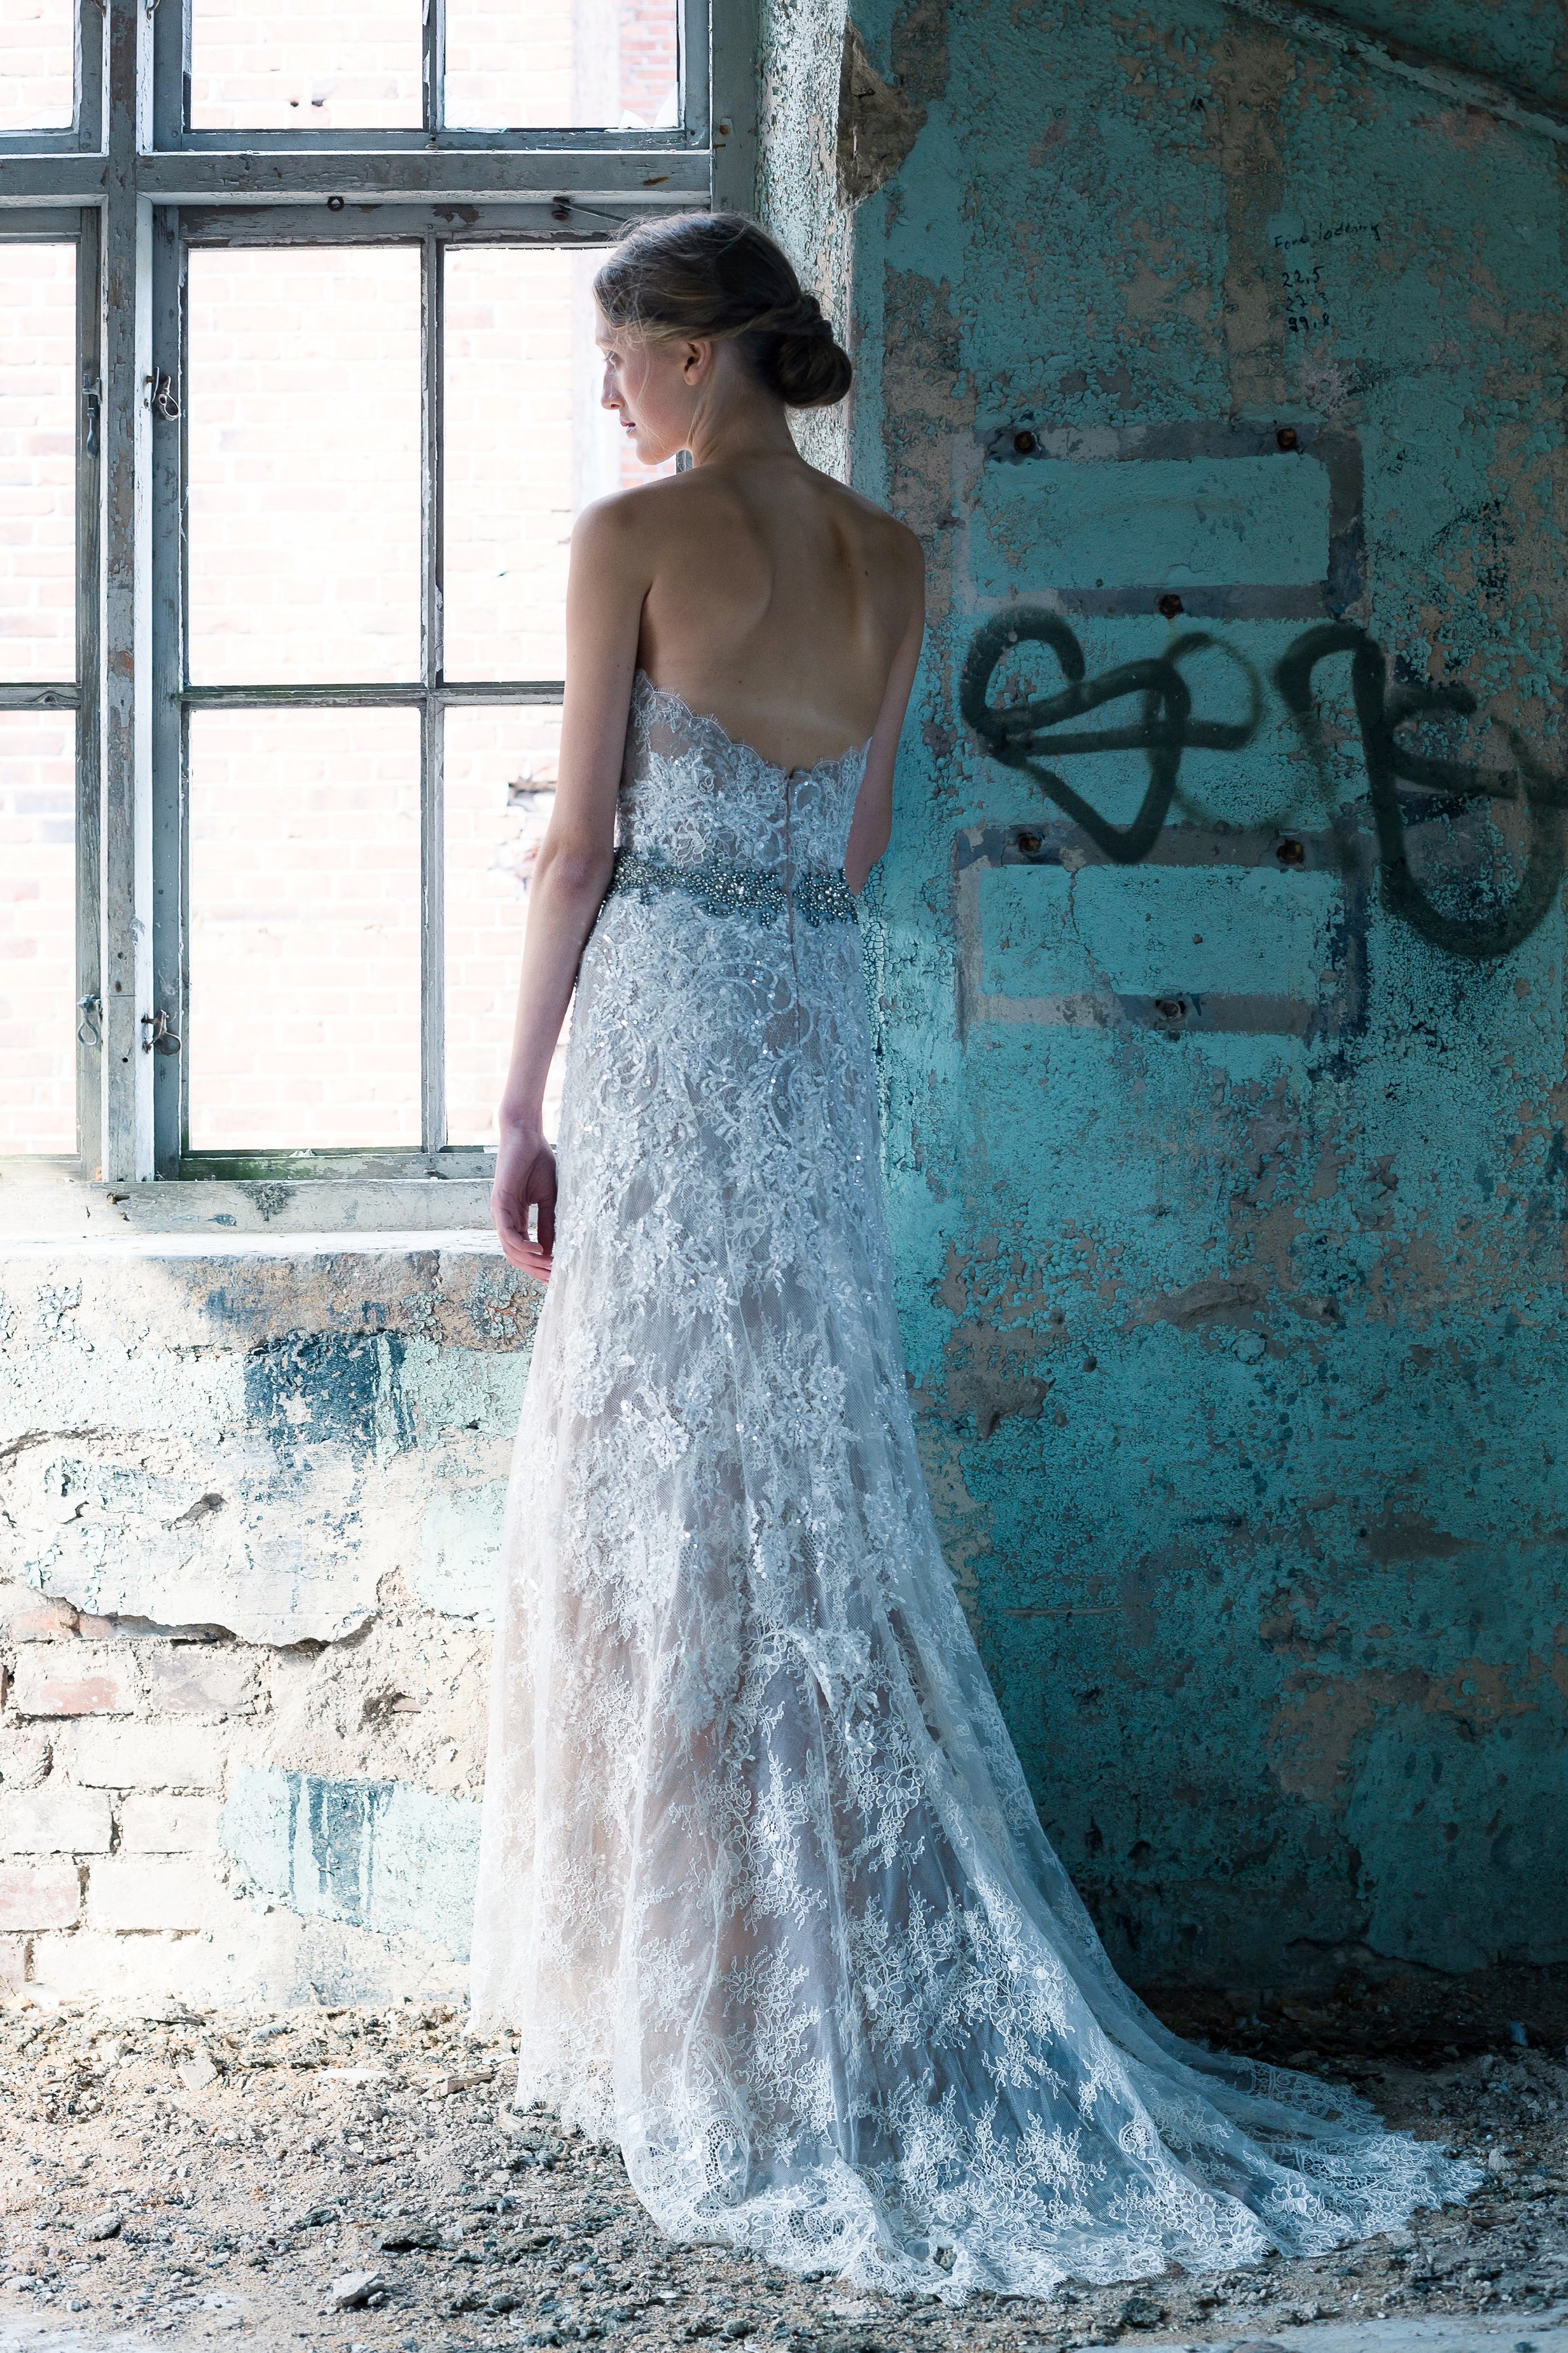 Caroline_fare_färe_villency_couture_wedding_dress.jpg